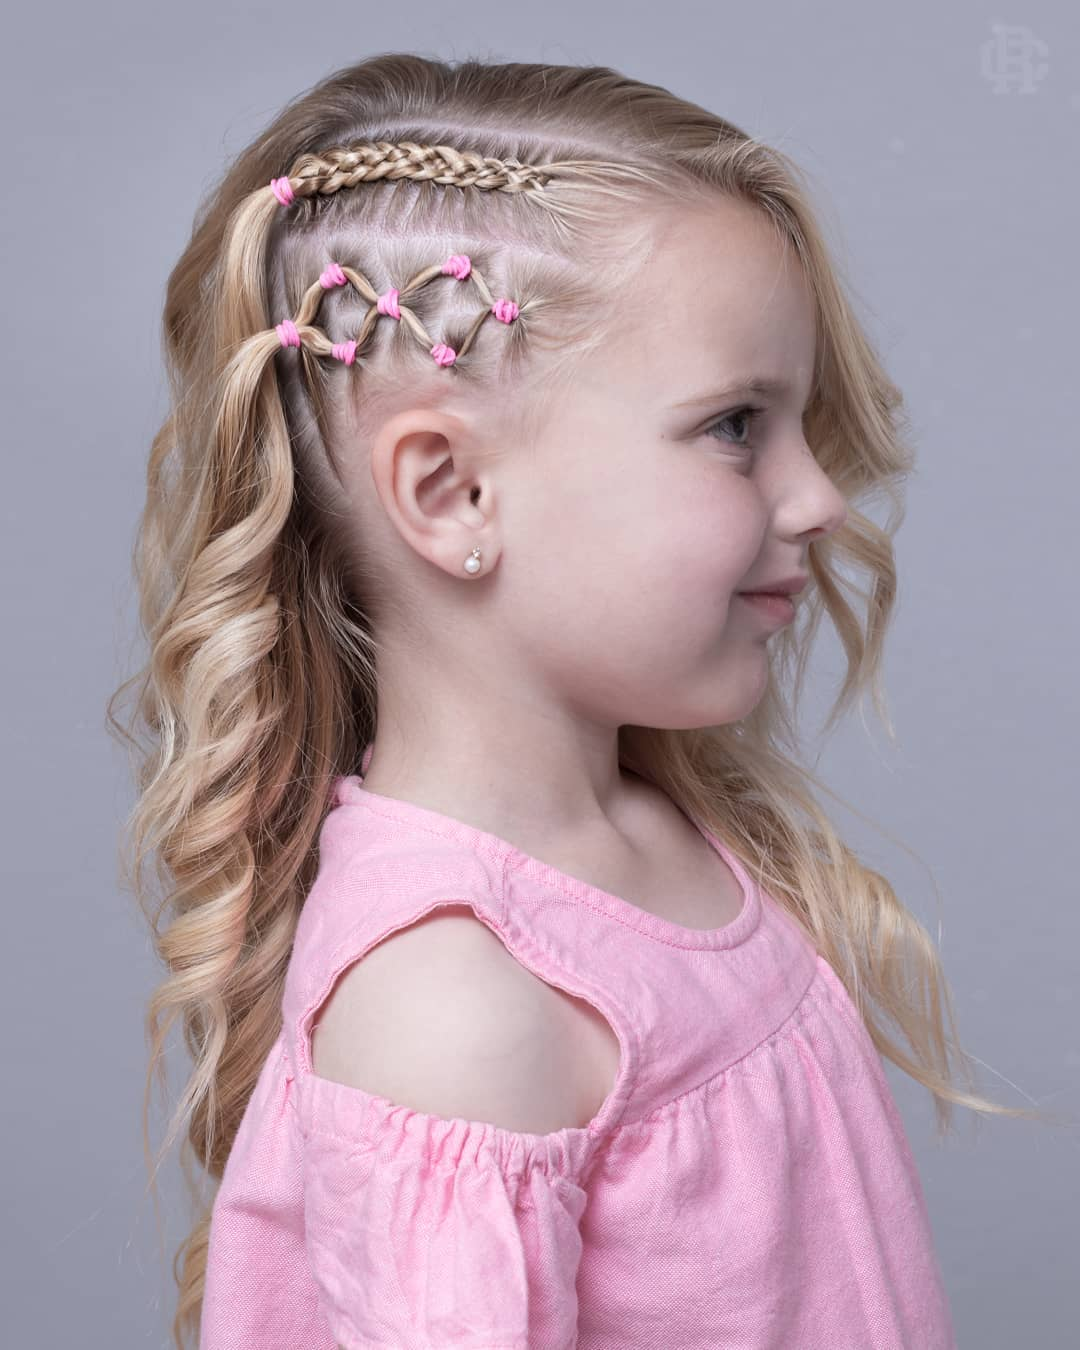 160 Braids Hairstyle Ideas for Little Kids